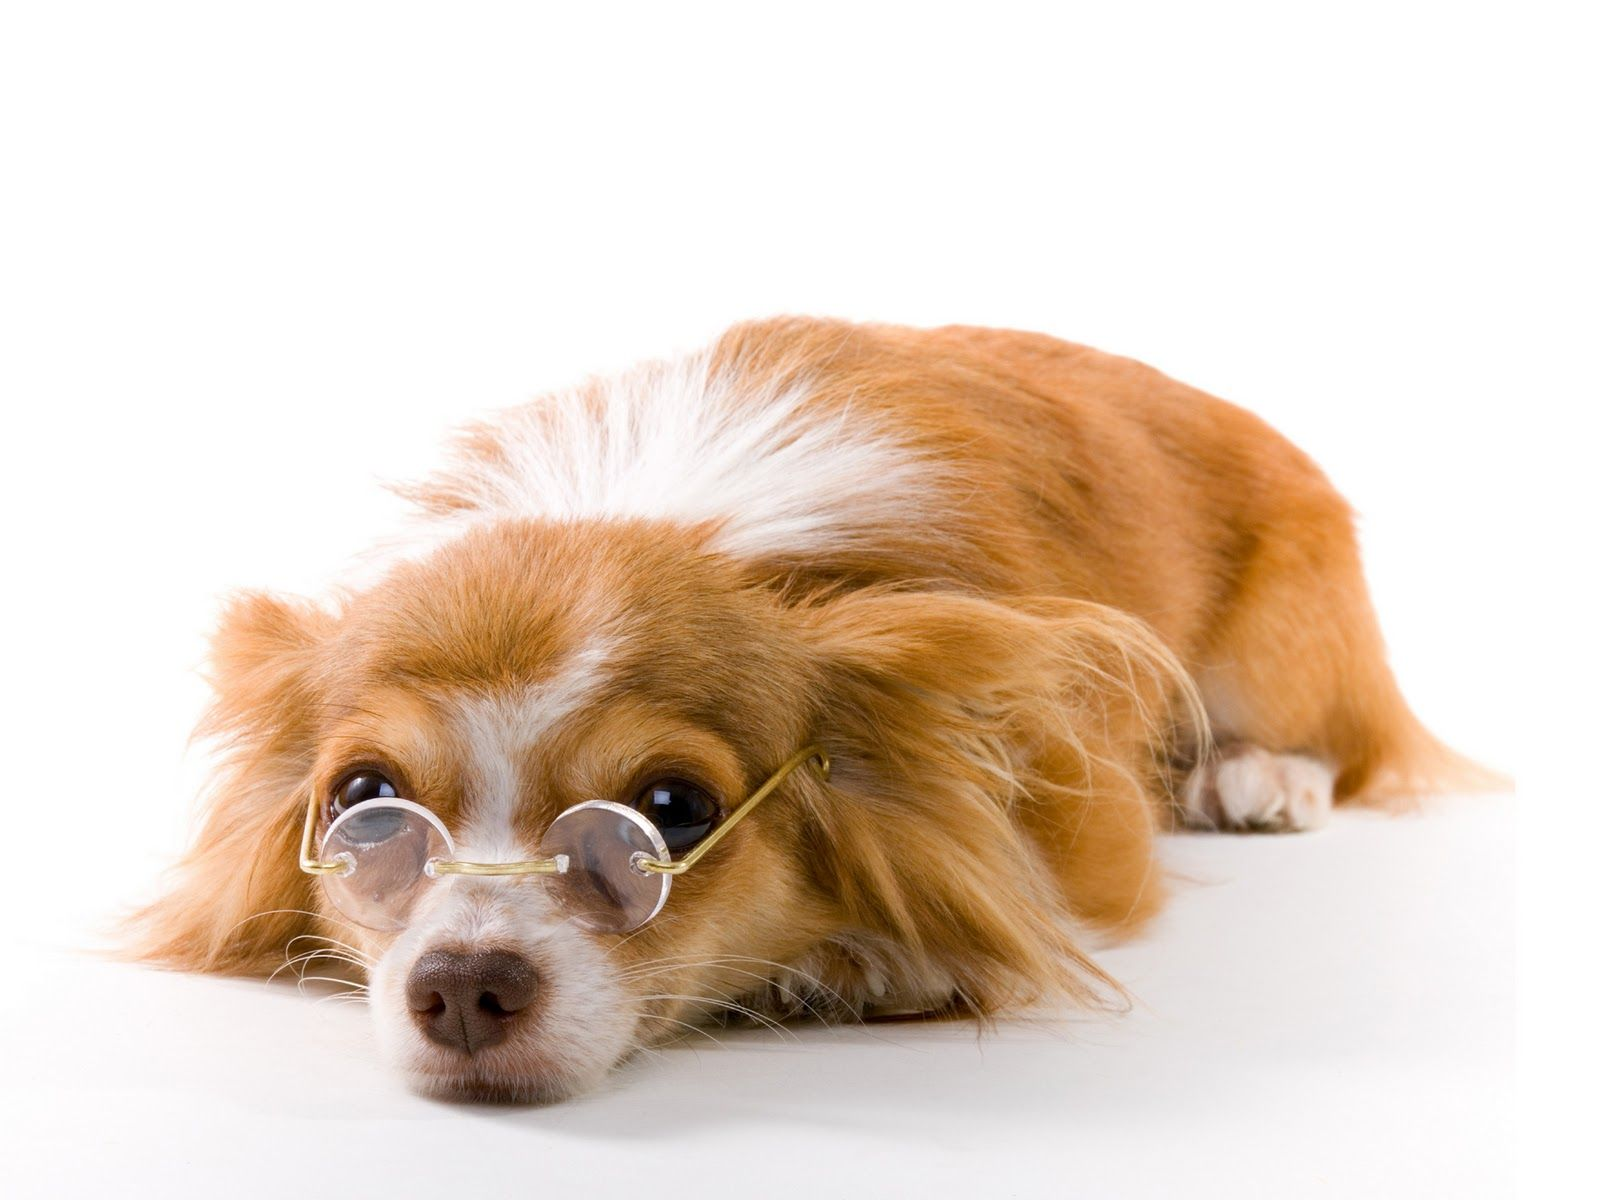 Dog With Eyeglass Dog Wallpapers Backgrounds On This Dogs Cute